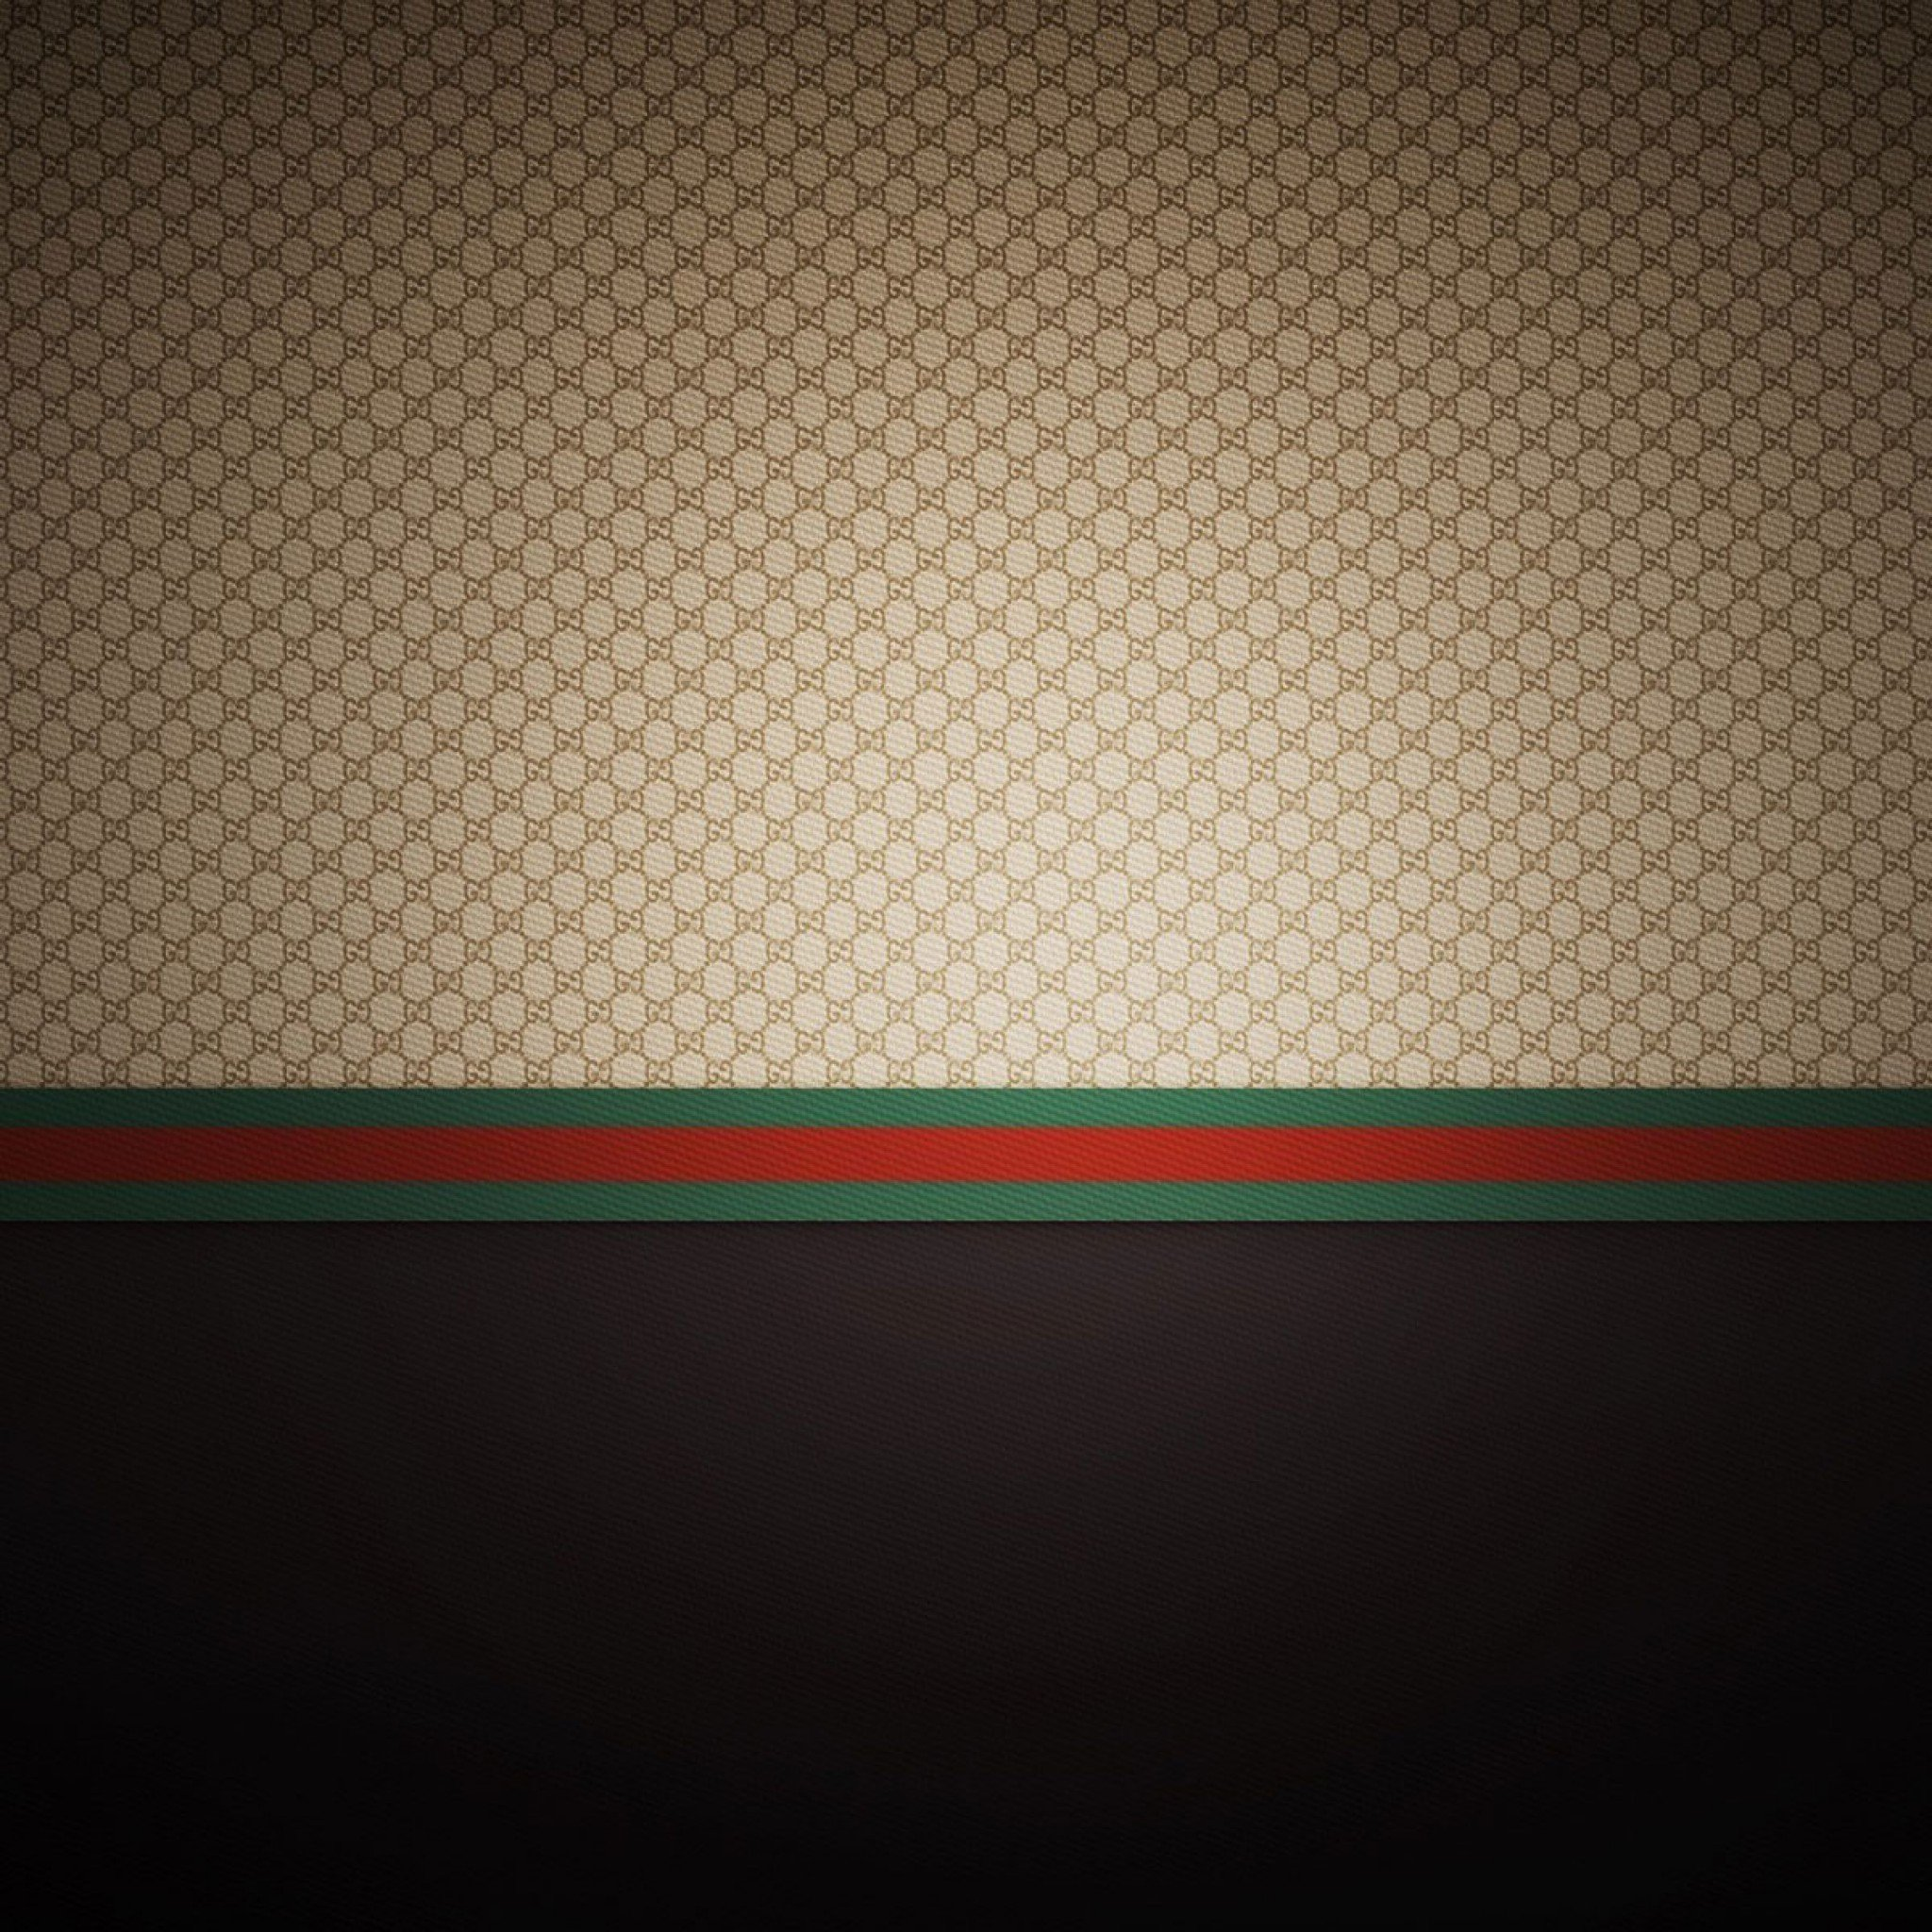 Gucci Logo Wallpaper Gucci wallpaper iphone 2048x2048